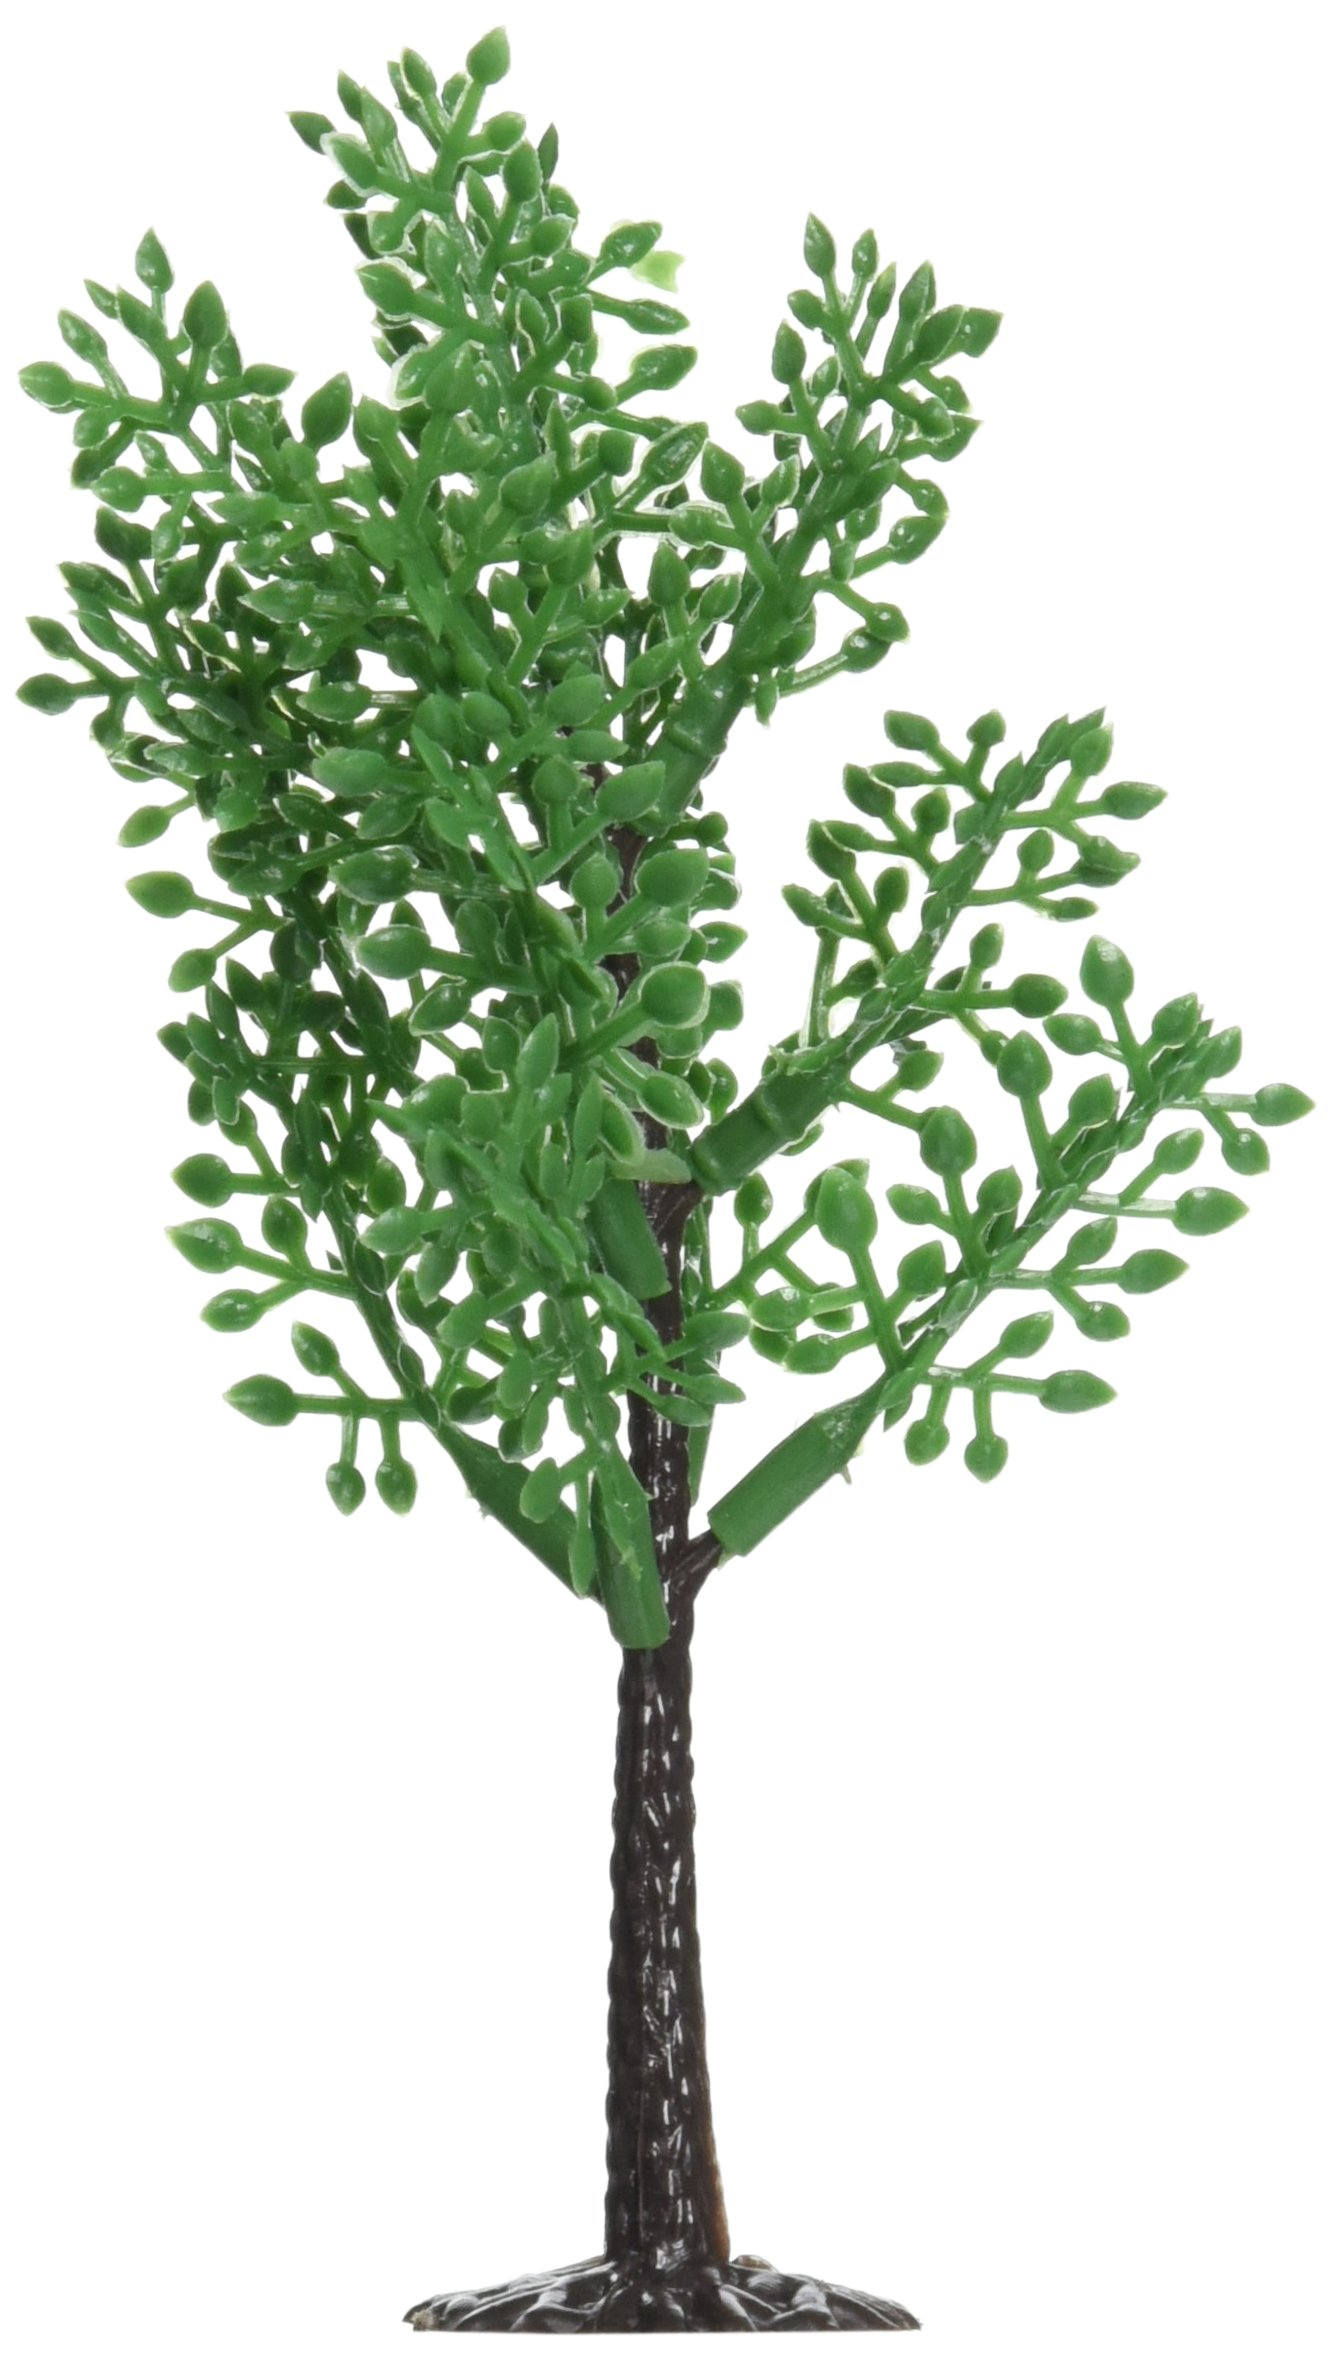 Oasis Supply 12-Piece Branch Tree with Stand for Cake Decorating and Sceneries, 4-Inch by Oasis Supply